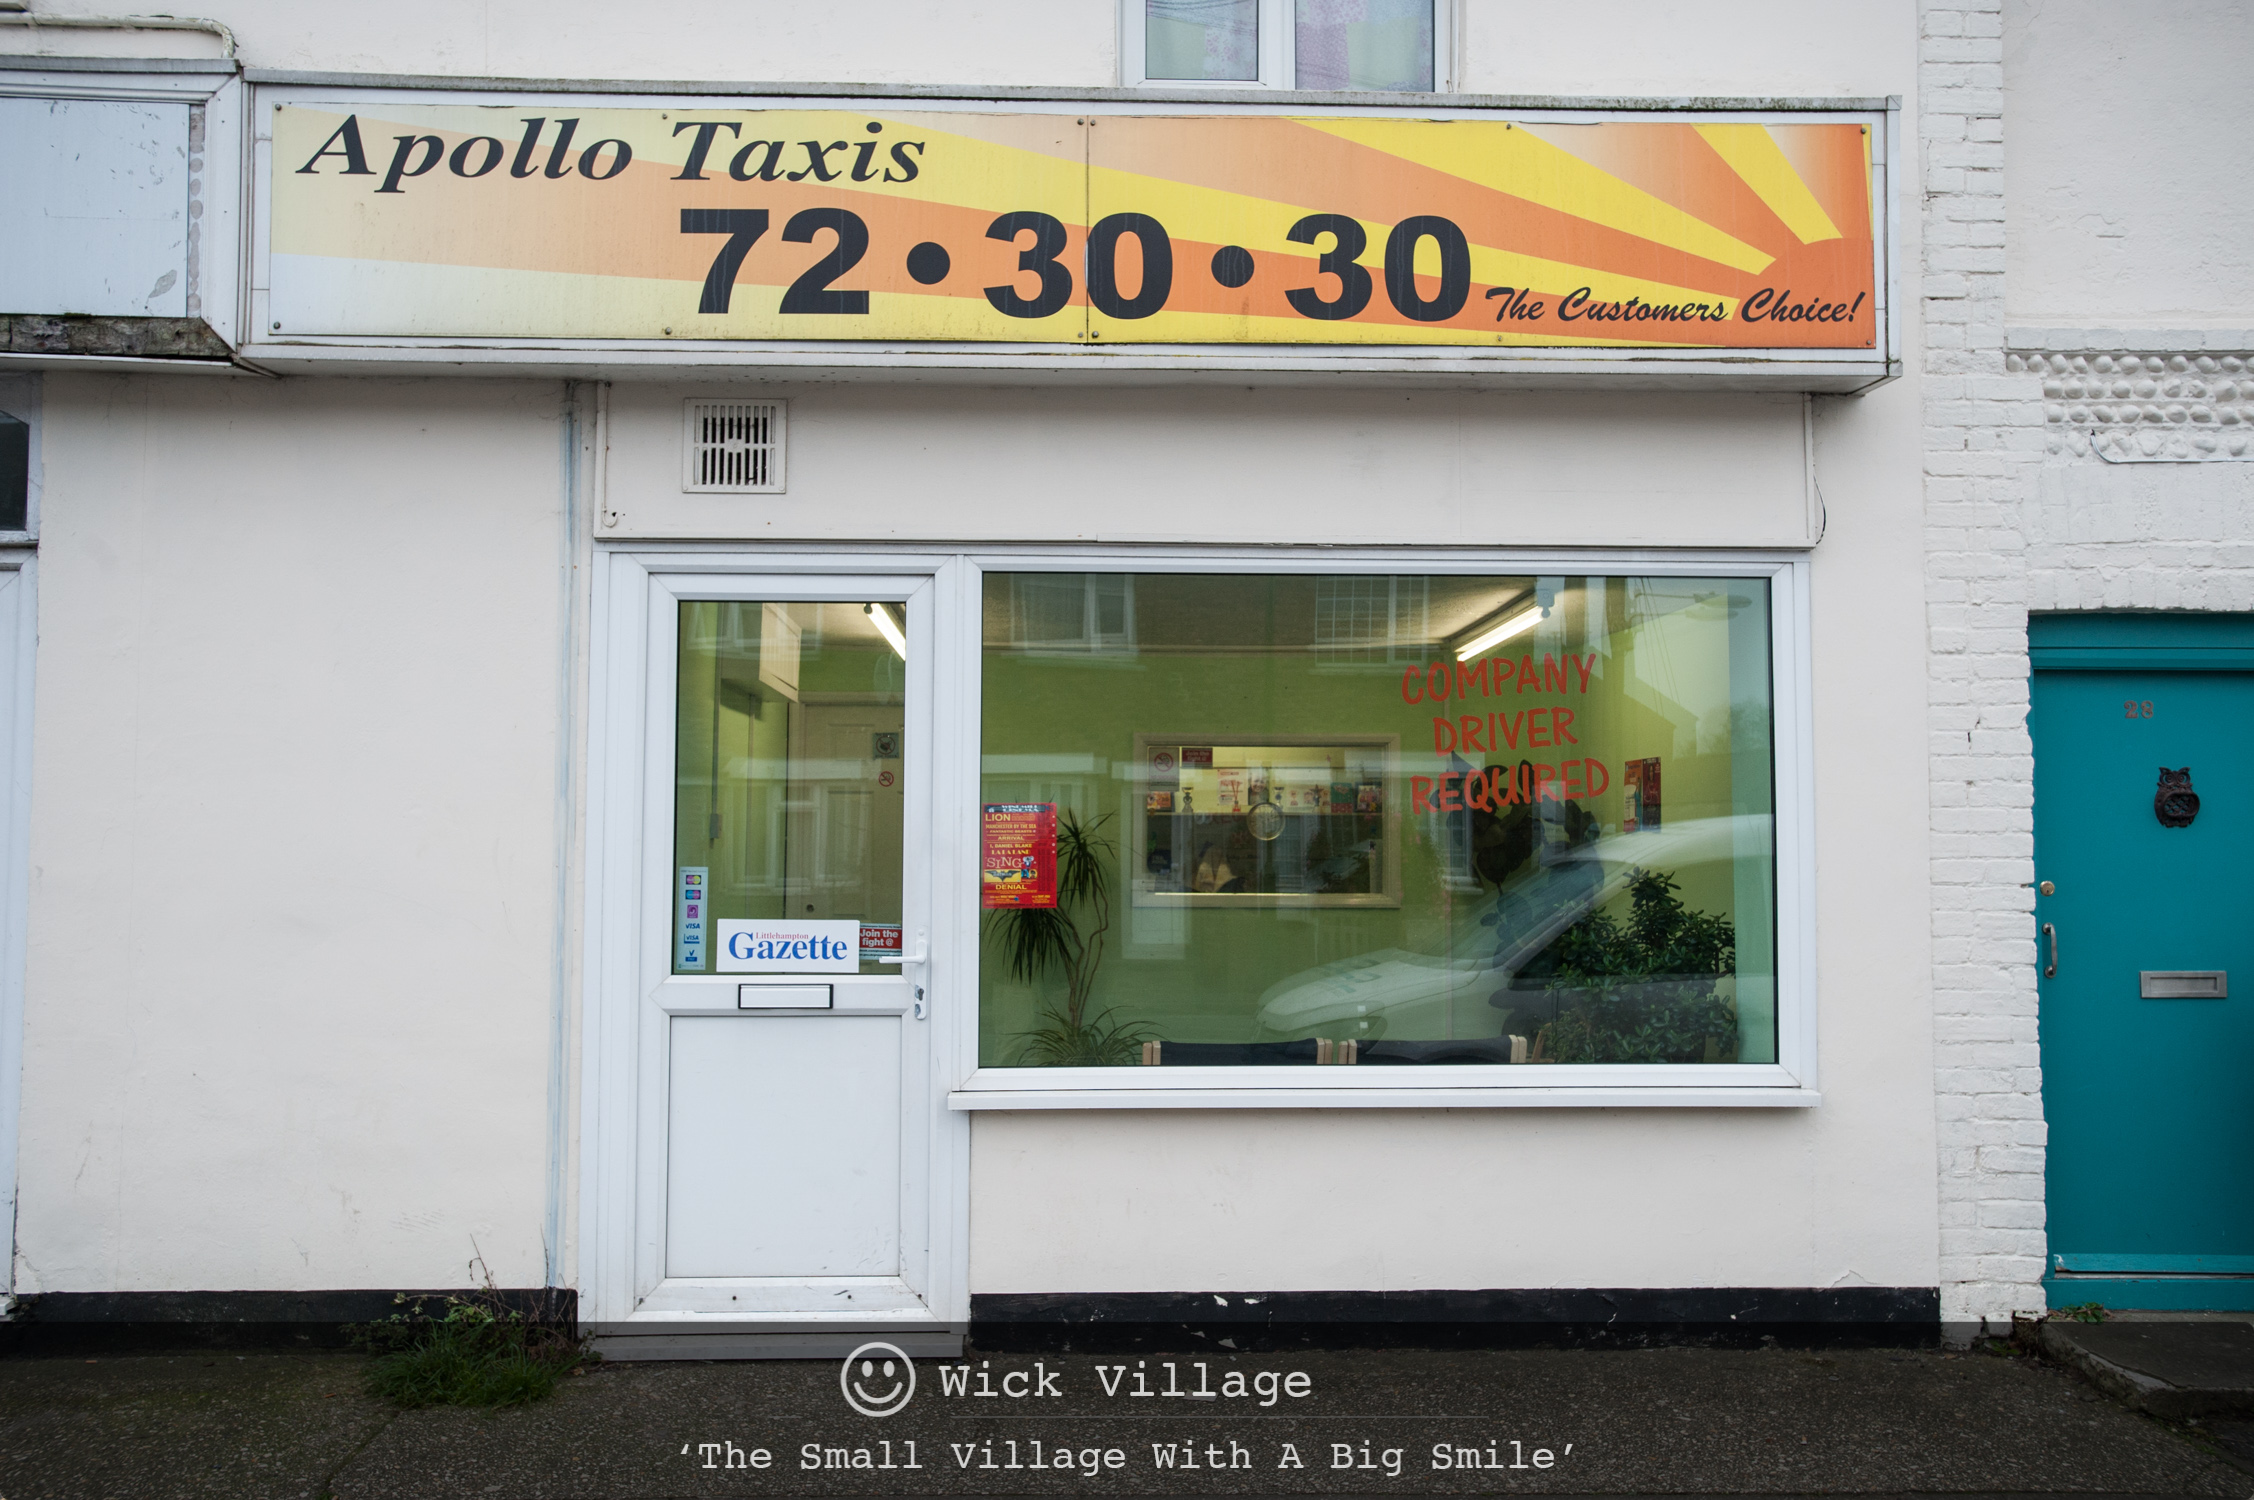 Apollo Taxis, Wick Village, Littlehampton.